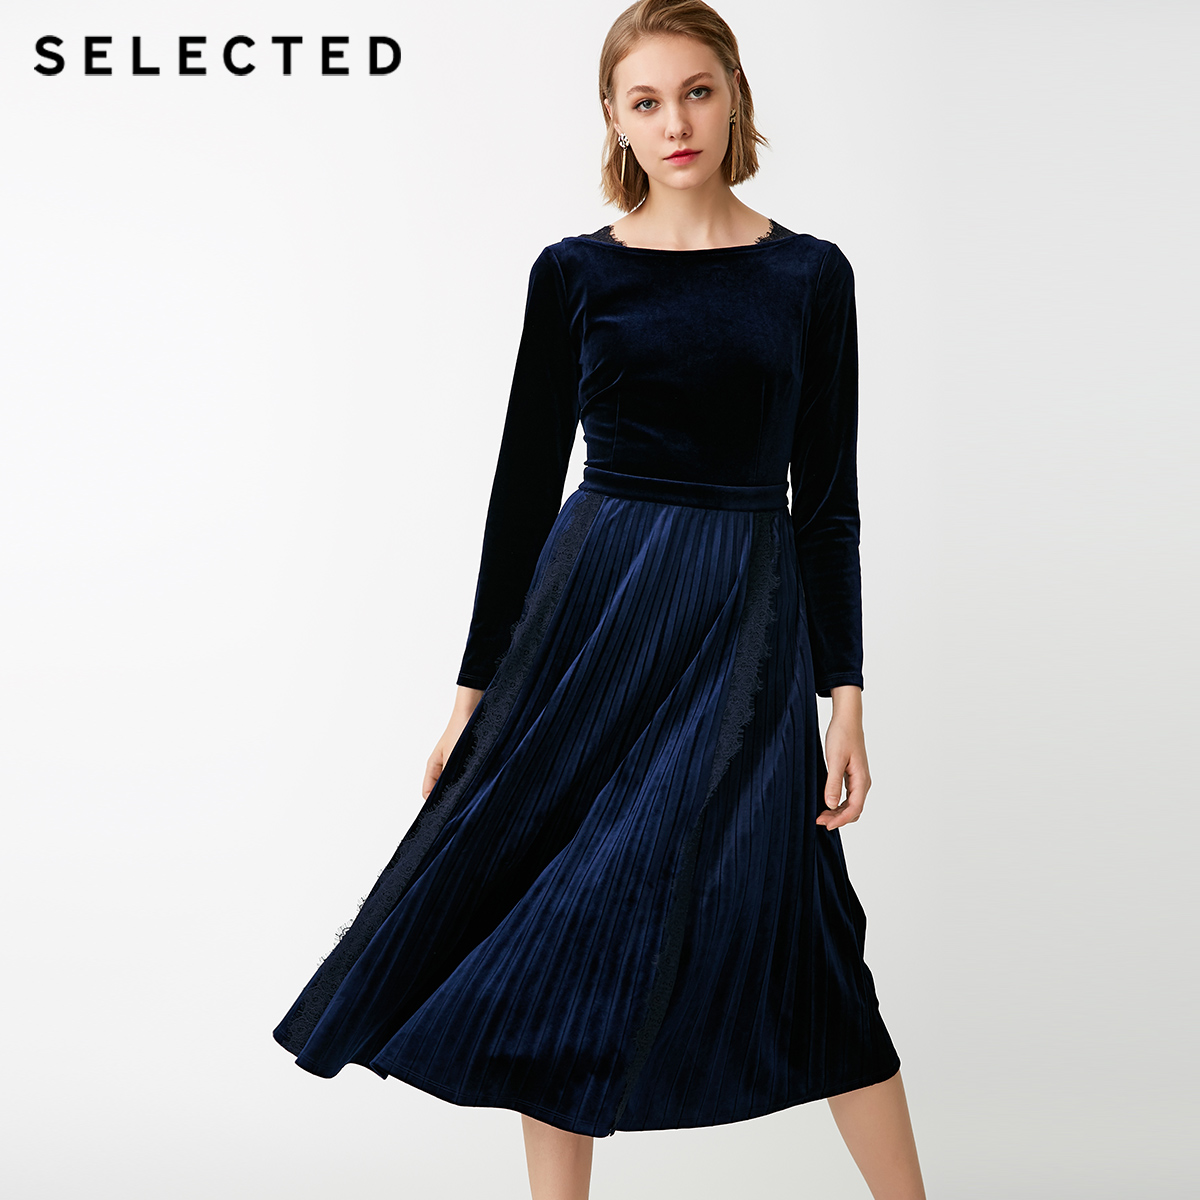 SELECTED ms ryder new lace stitching velvet long sleeved dress S 418461501